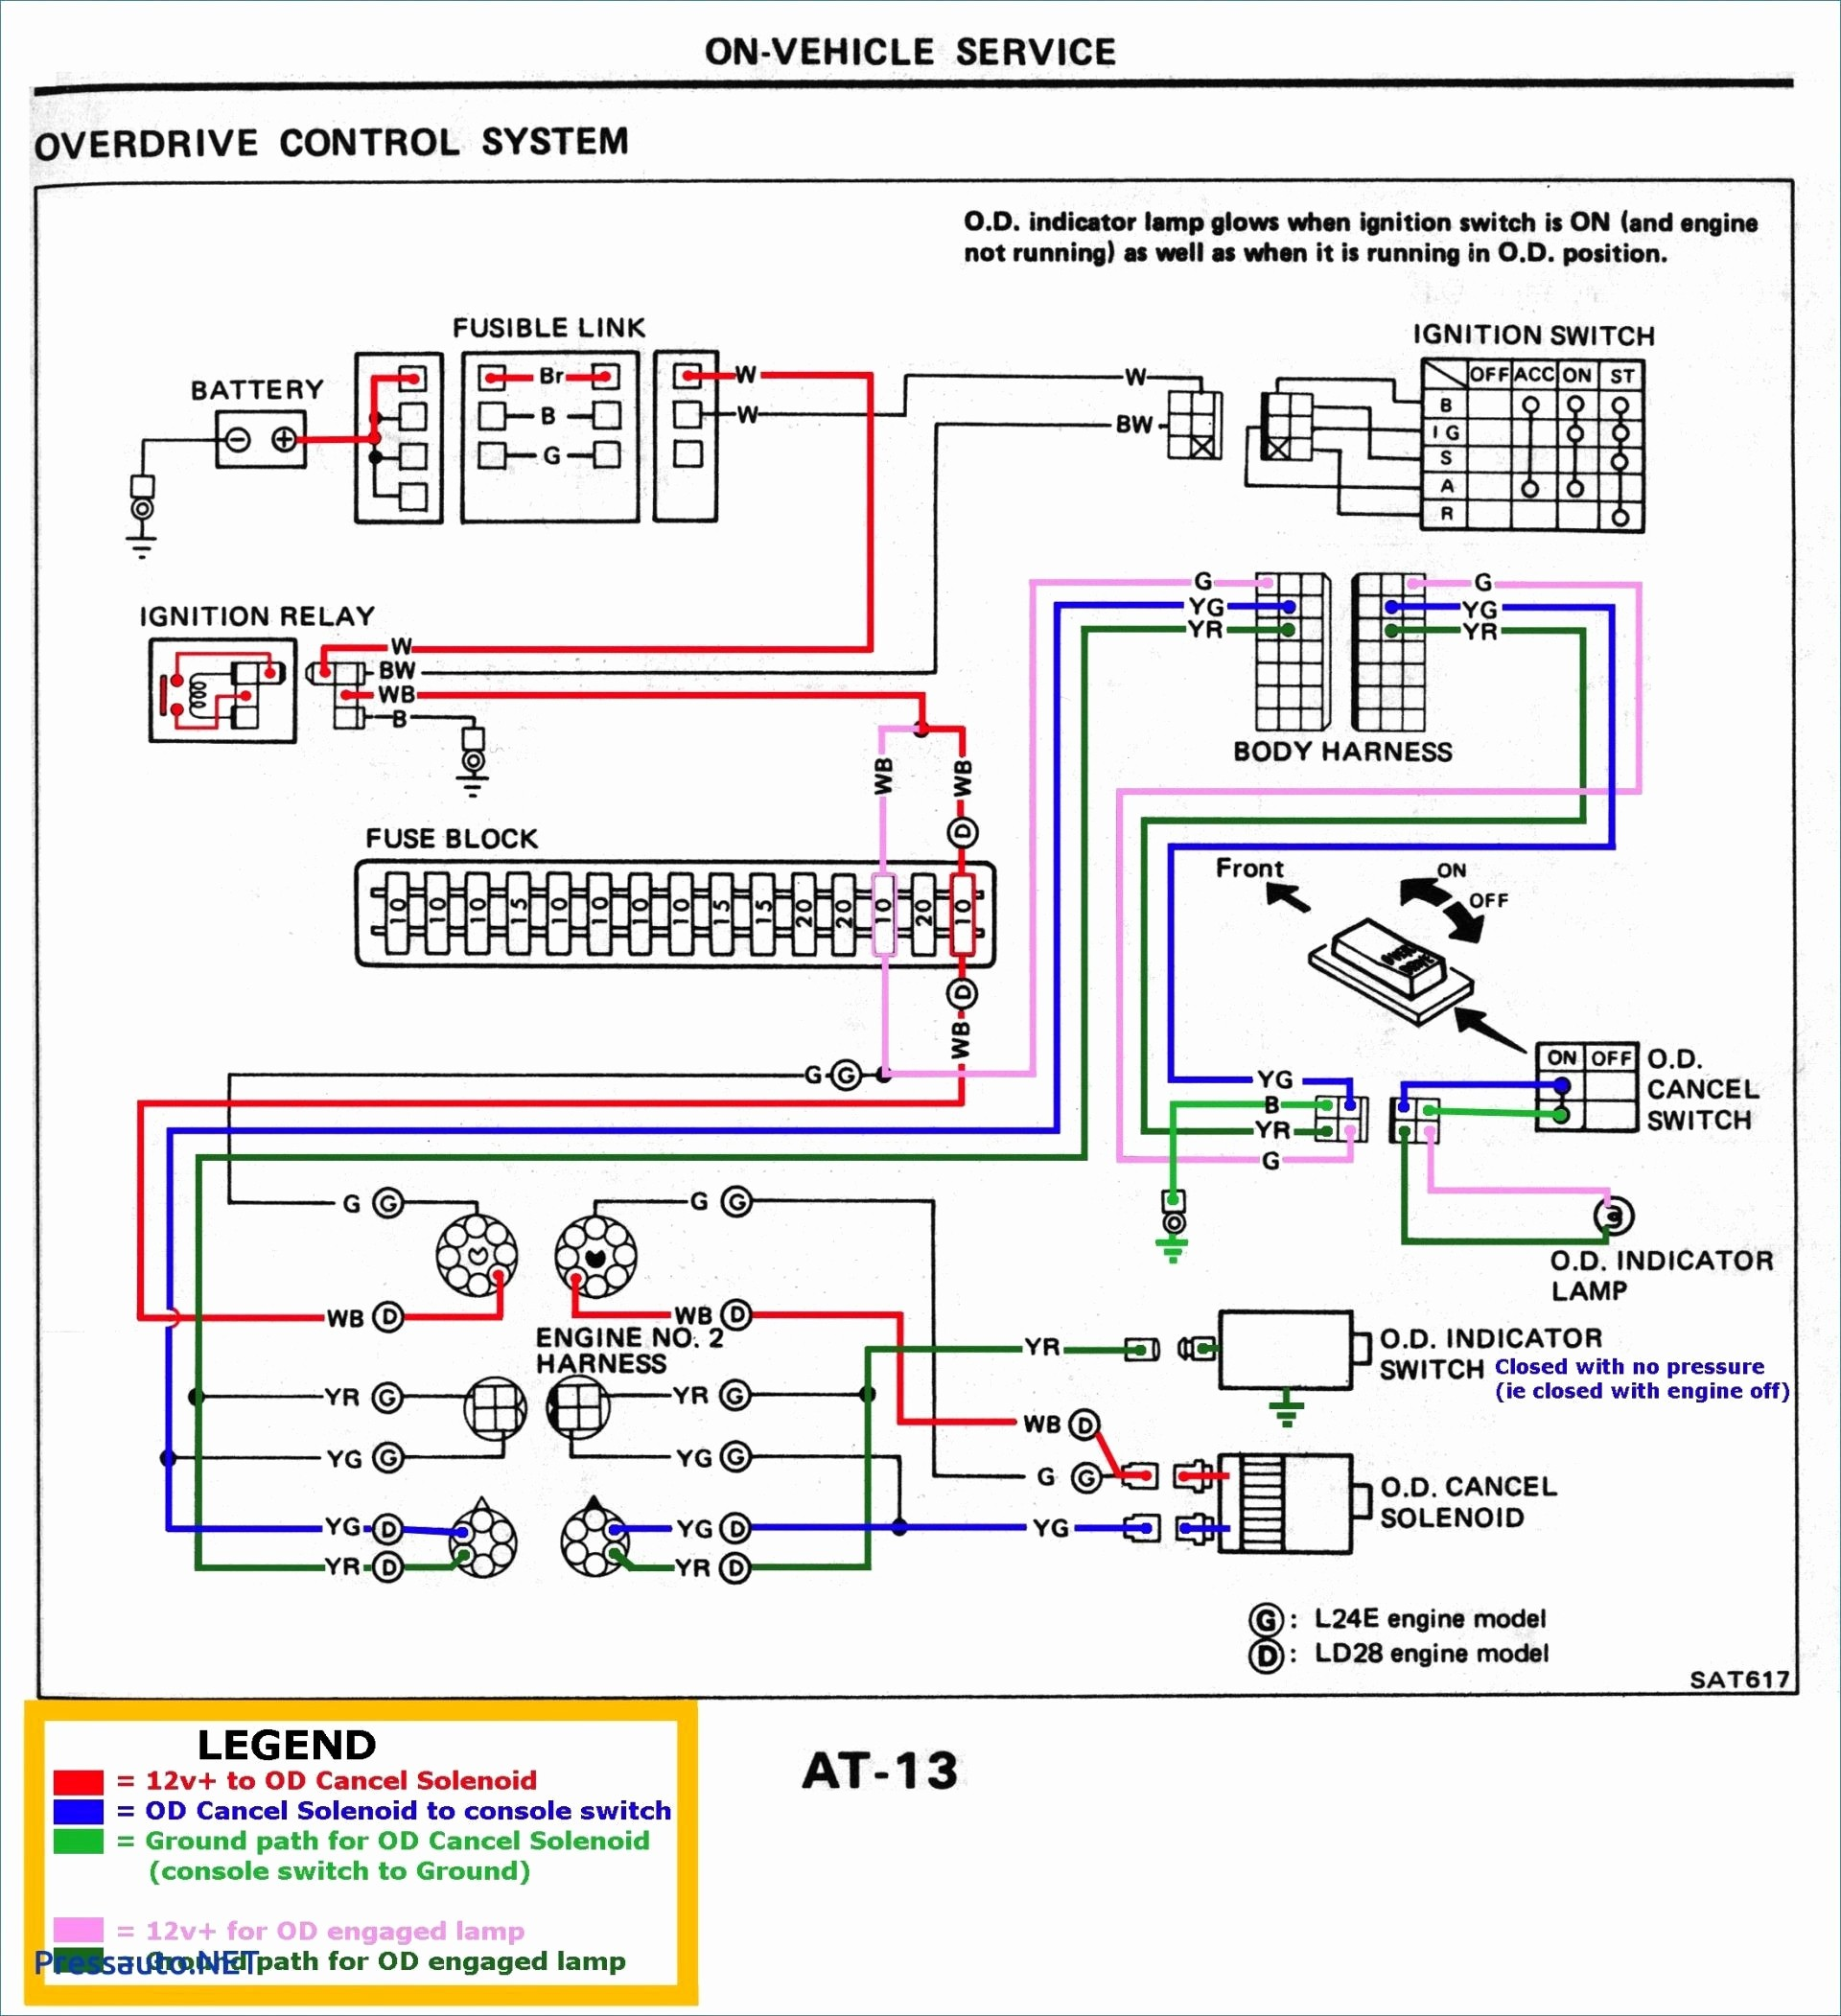 Trailer Connector Wiring Diagram 7 Way Wiring Diagram for A 7 Way Trailer Plug Inspirational Chevy 7 Pin